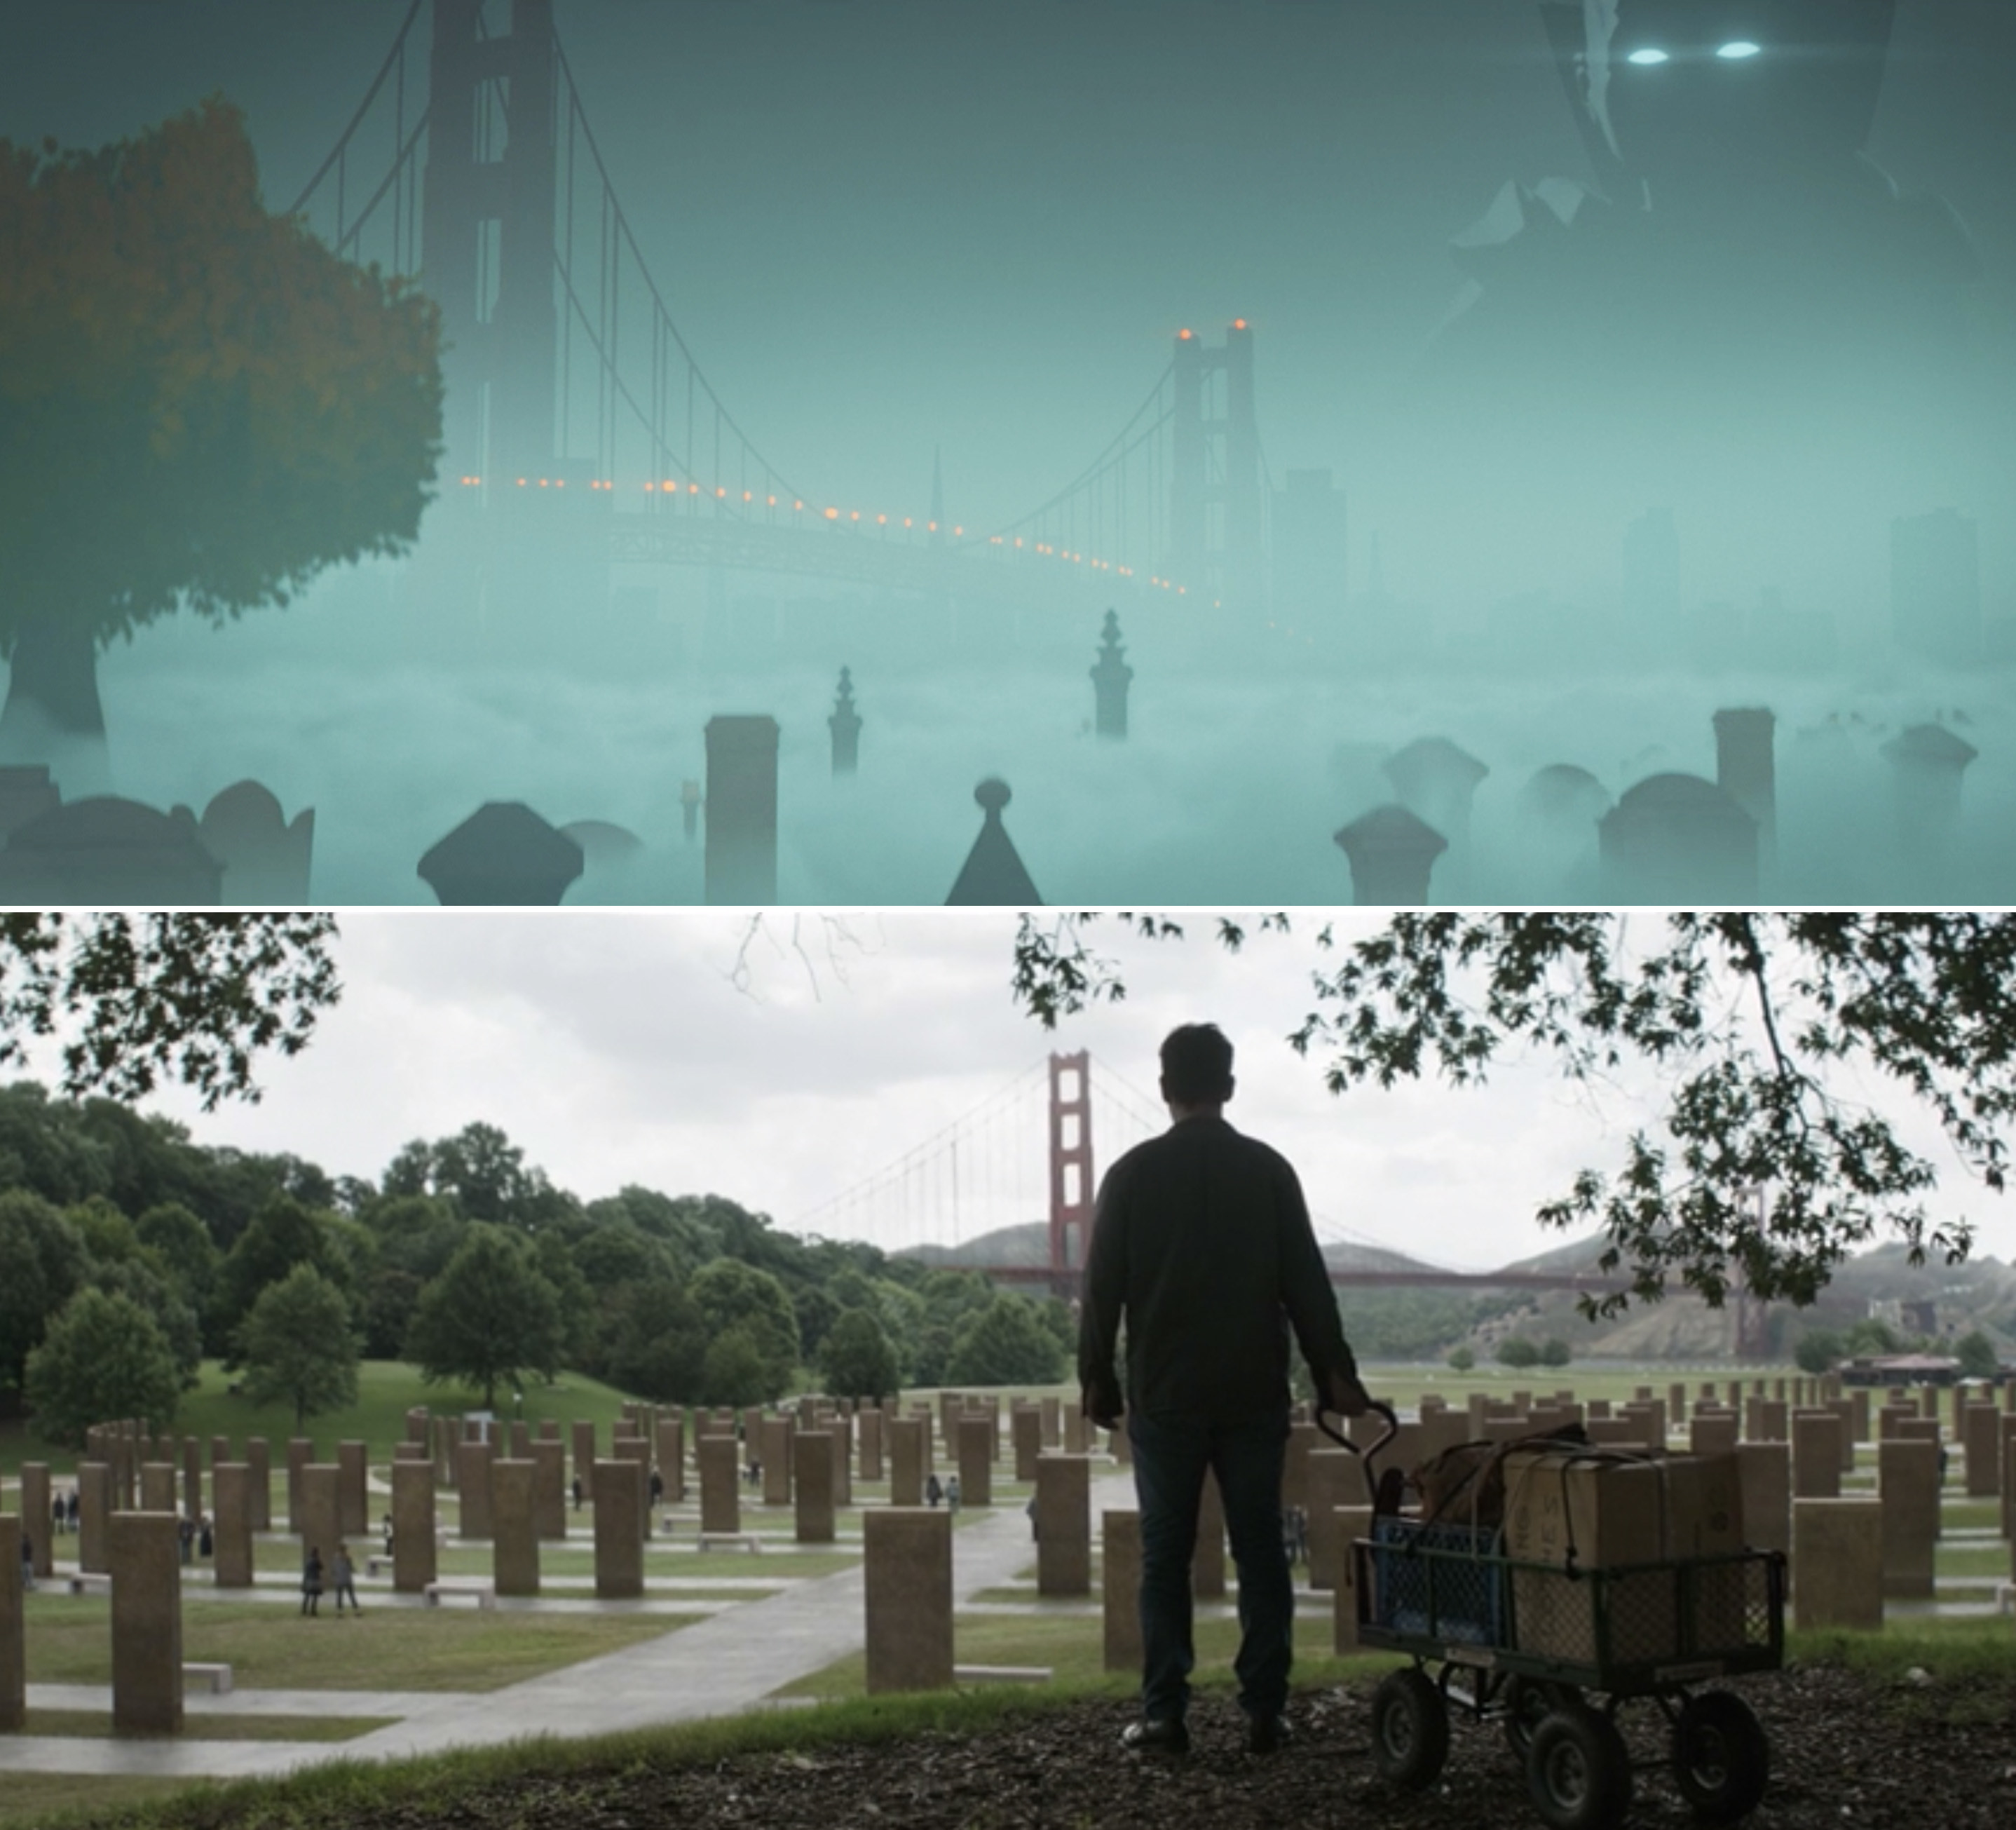 A cemetery near the Golden Gate Bridge vs. Scott visiting the Wall of the Vanished